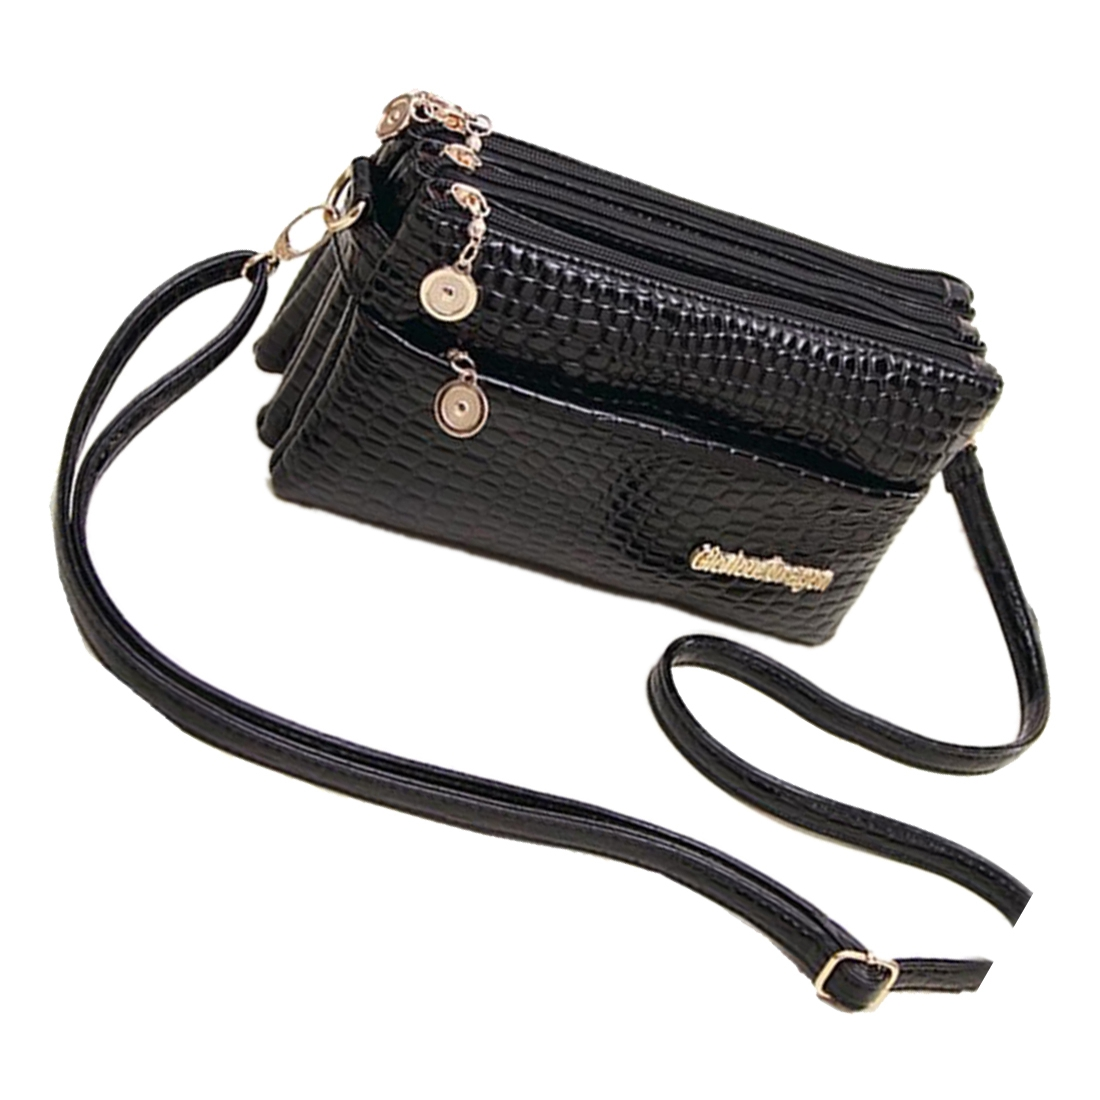 2018 new fashion and high quality Women handbags Small Shoulder Crocodile Pattern Messenger Bags for Handbag Clutch Black PU